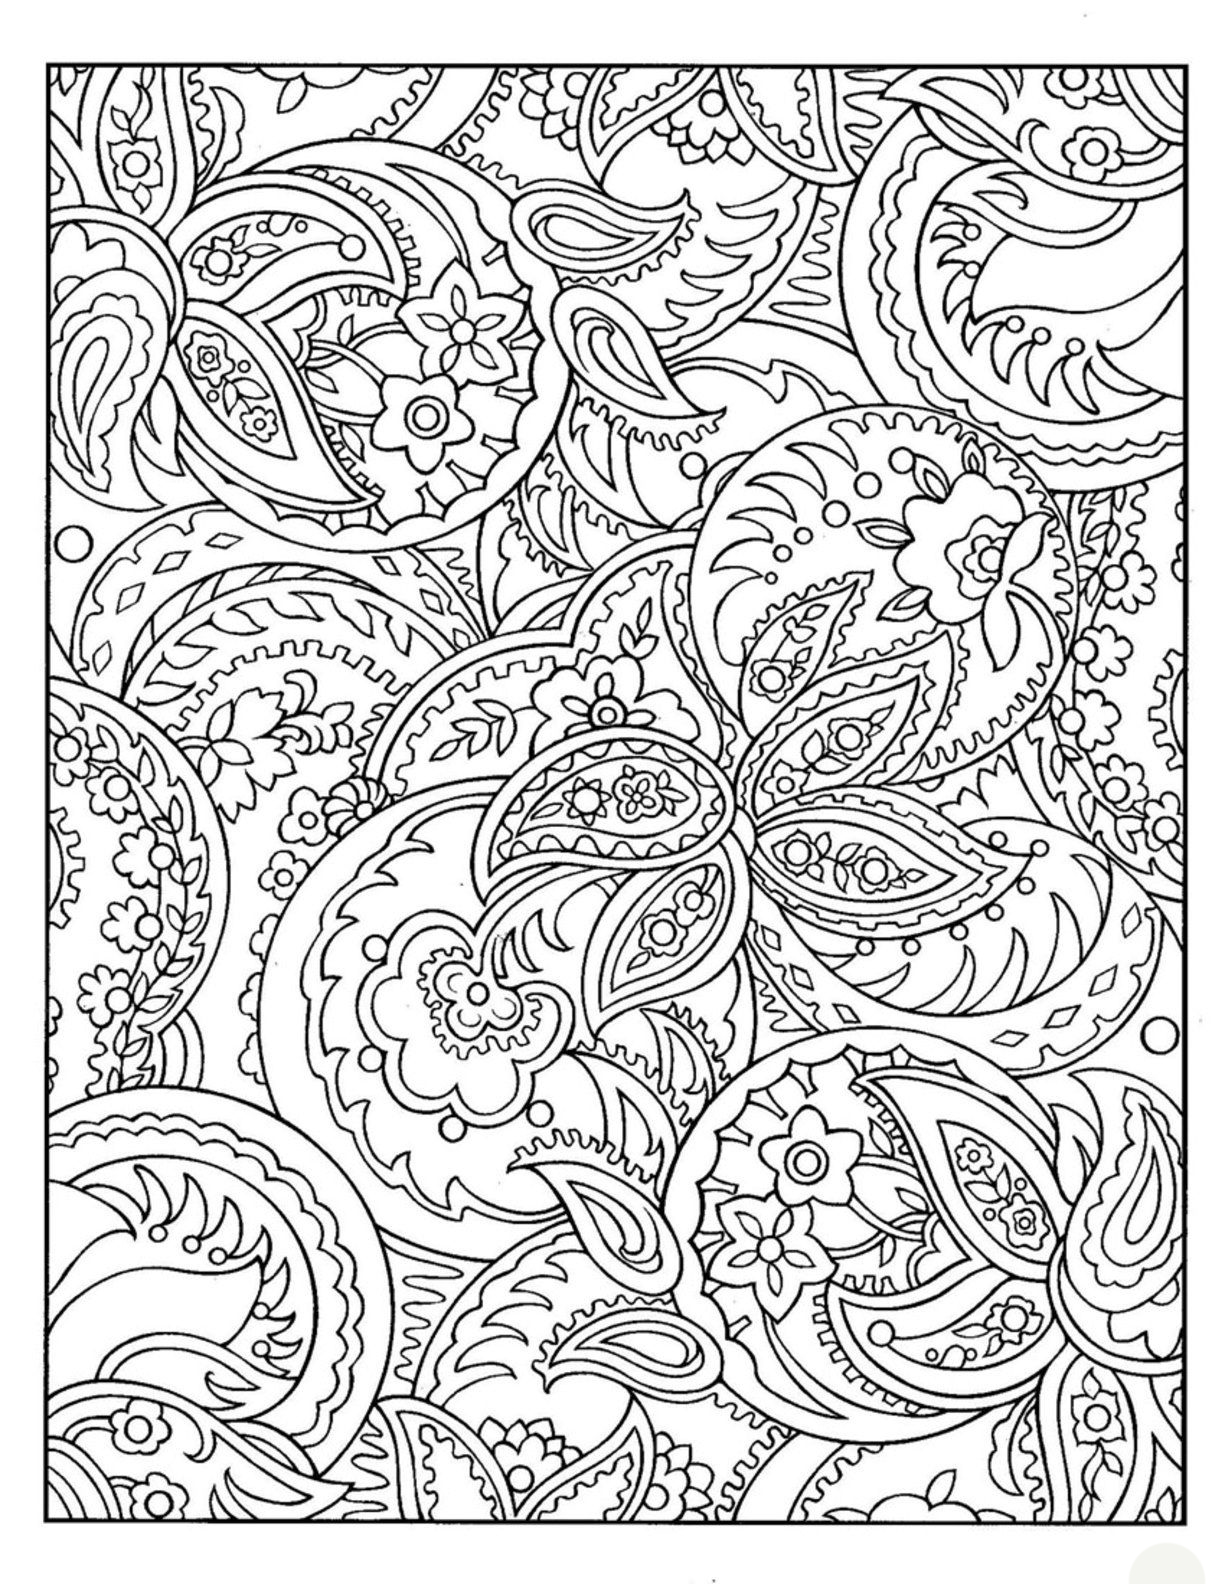 complex design free coloring pages | Pattern Coloring Pages - Best Coloring Pages For Kids